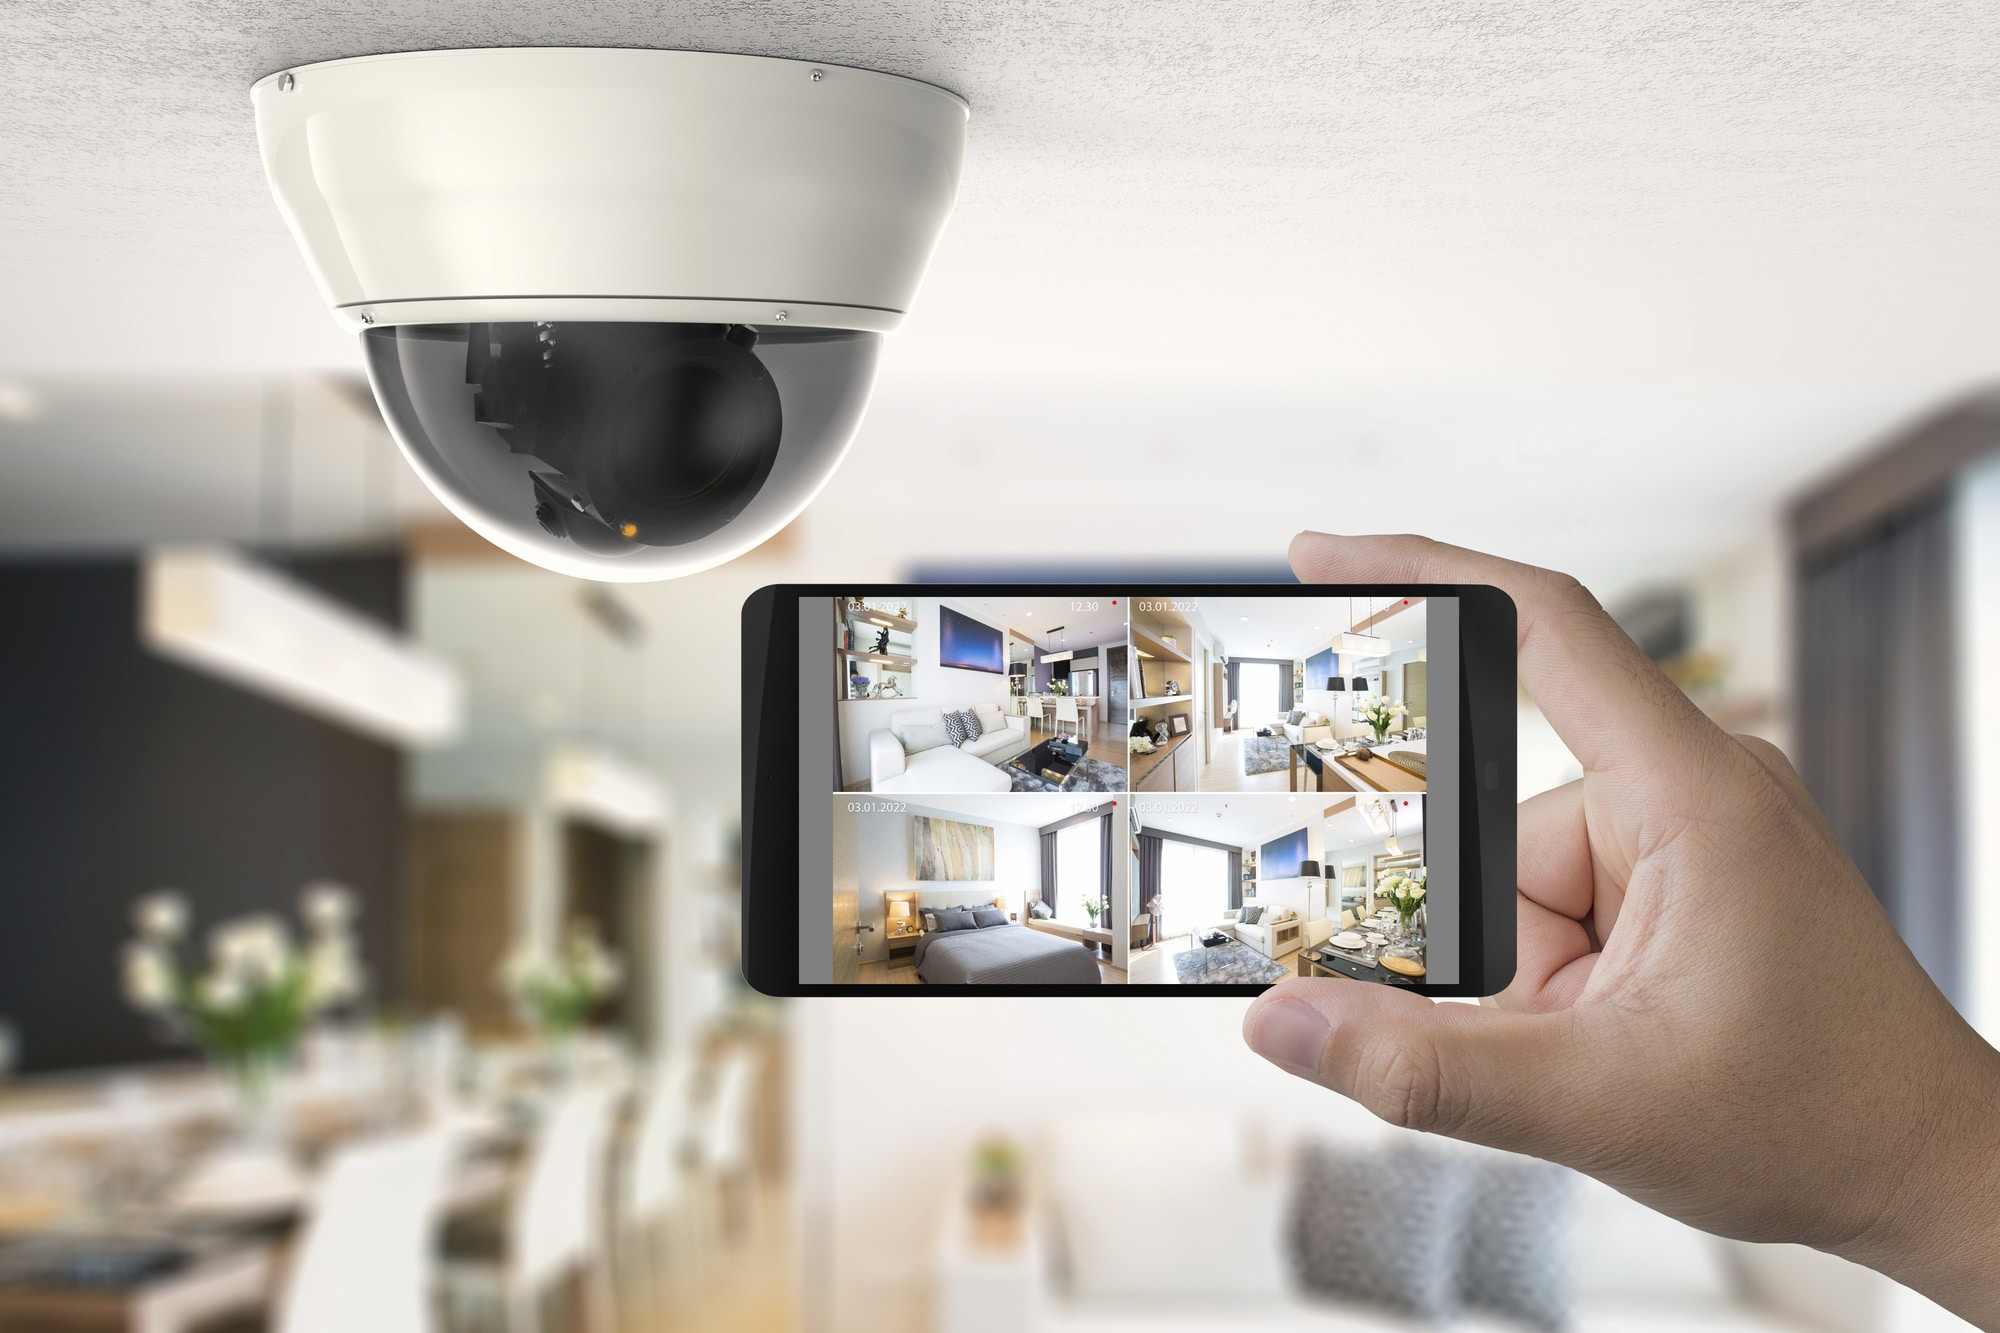 The Surefire Way To Find Home Security Success